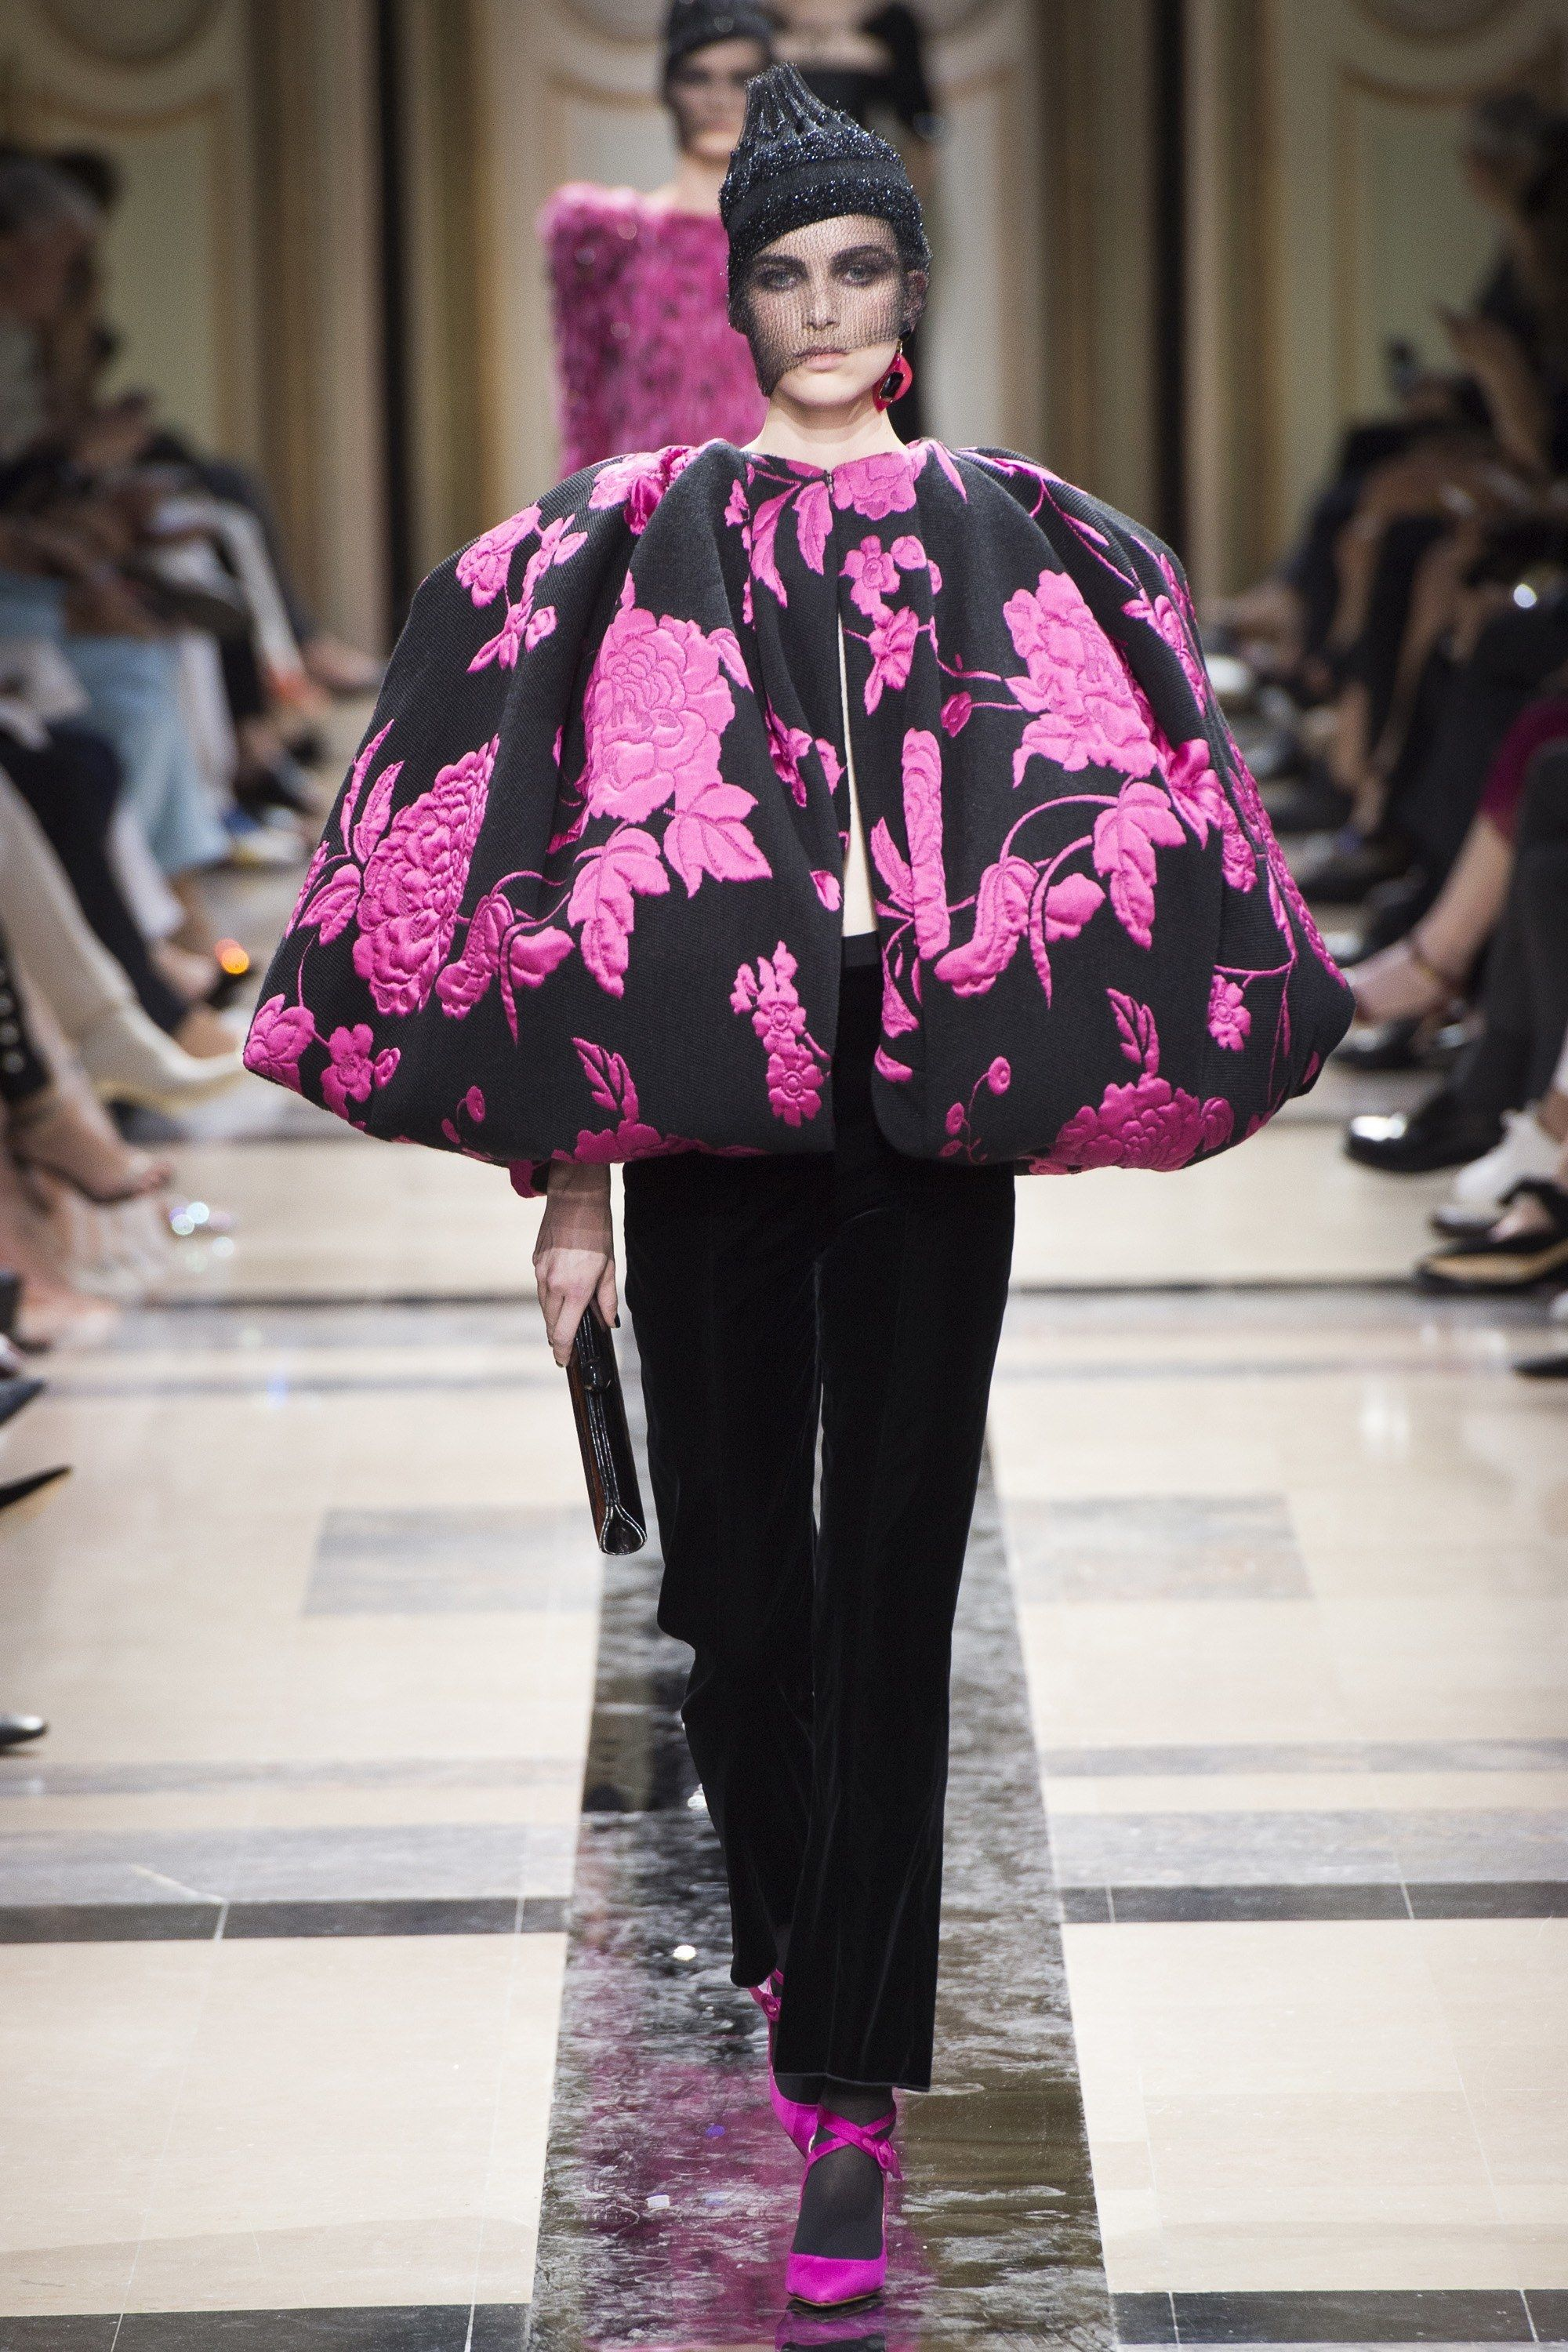 The Most Extravagant, Over-the-Top Looks From Paris Haute Couture Photos | W Magazine